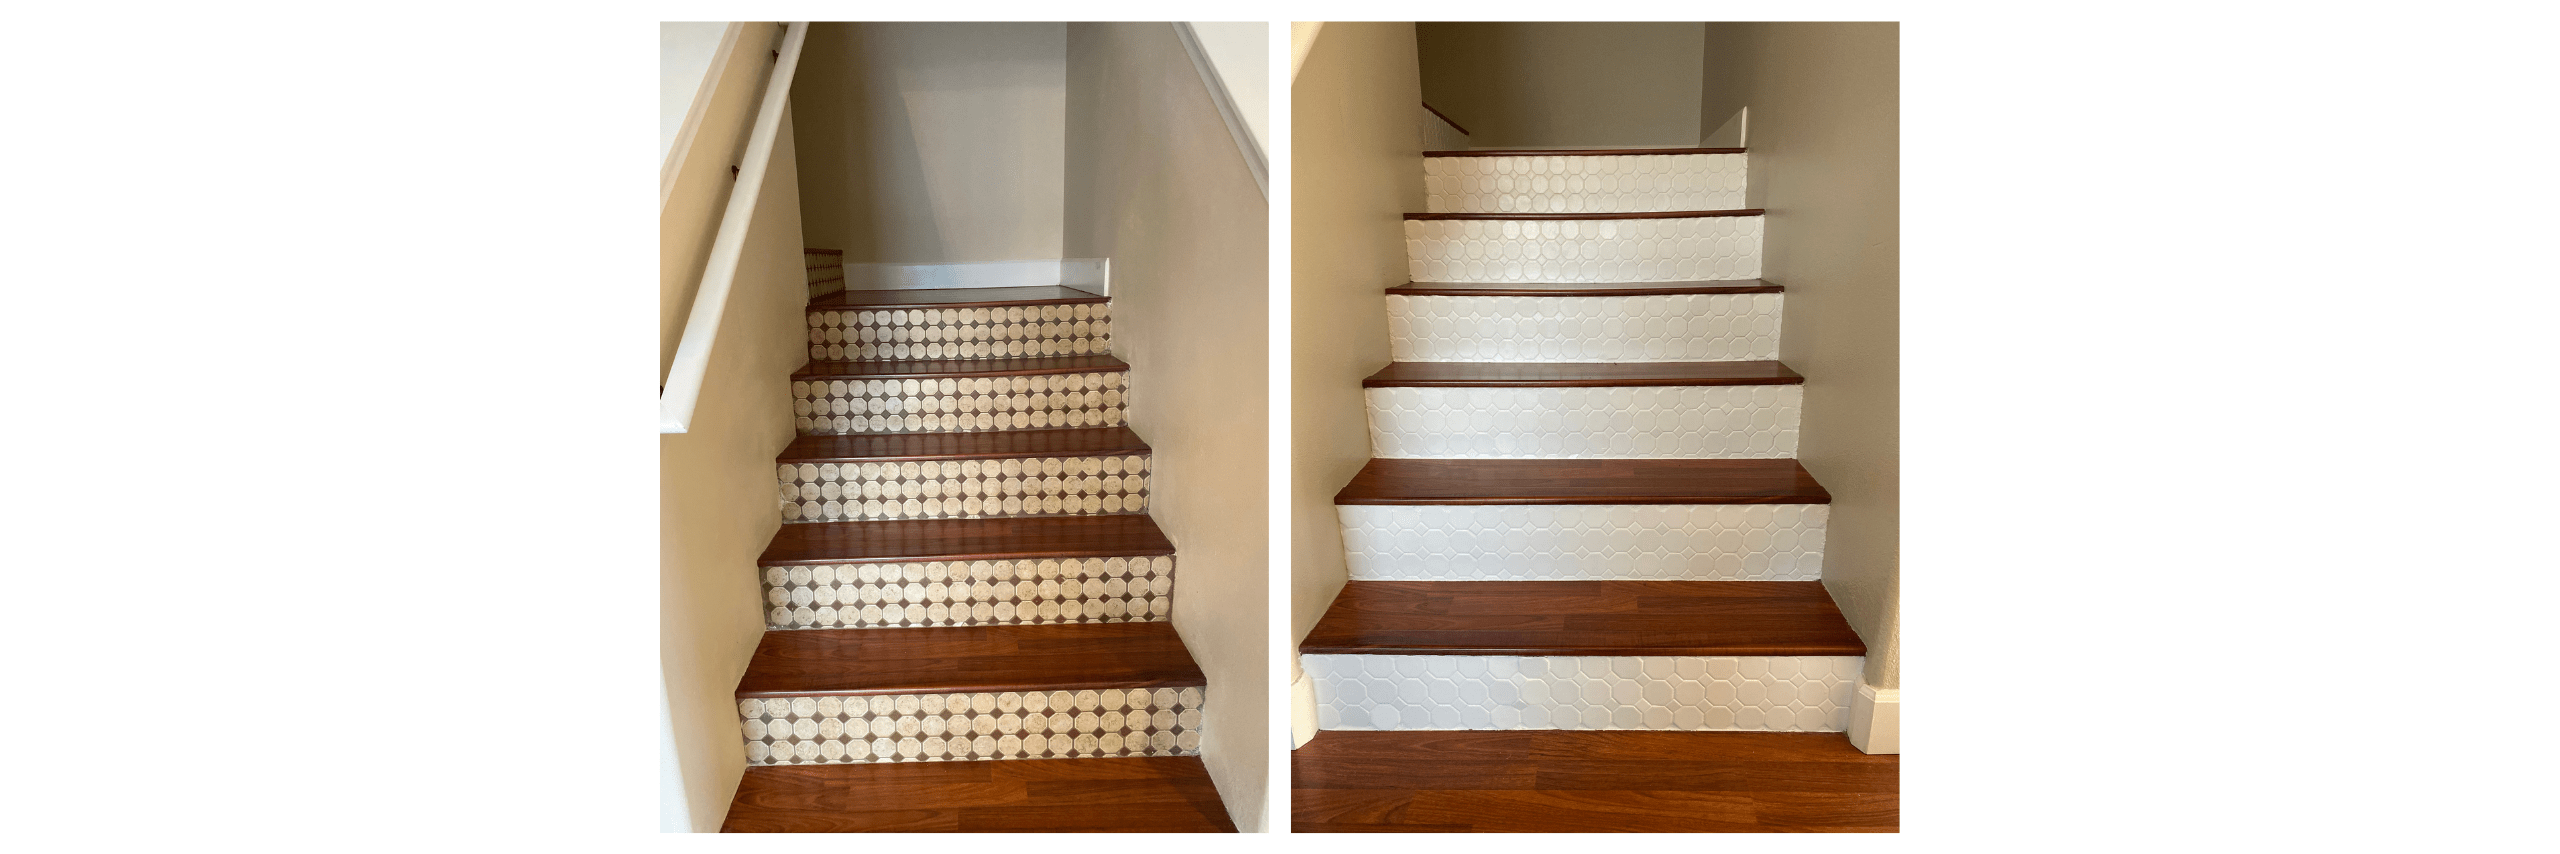 Ceramic Tile on Stairs Risers Painted